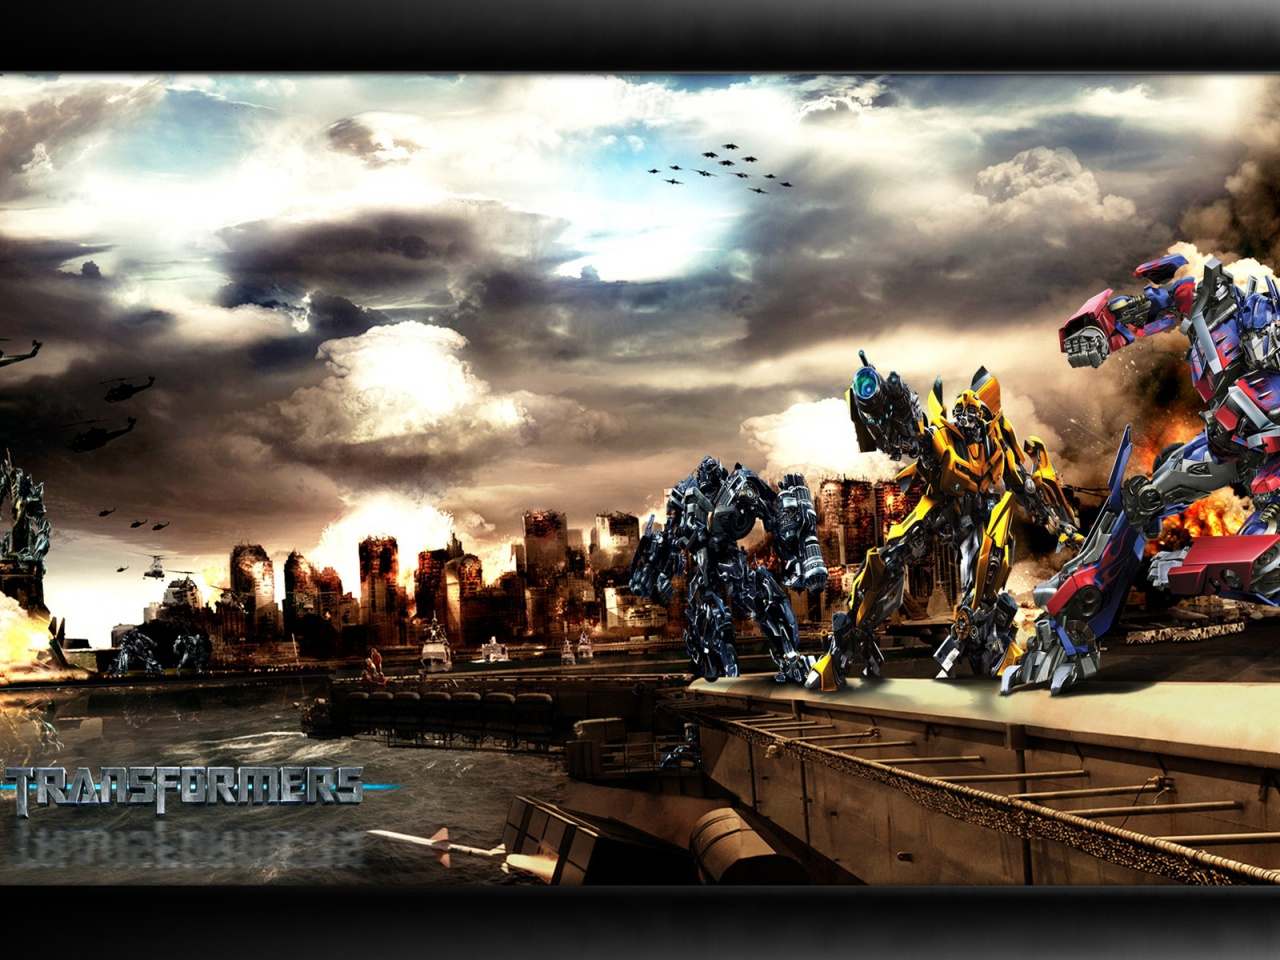 Autobot vs Decepticons movie wallpaper 1280x960 Movie Wallpapers 1280x960